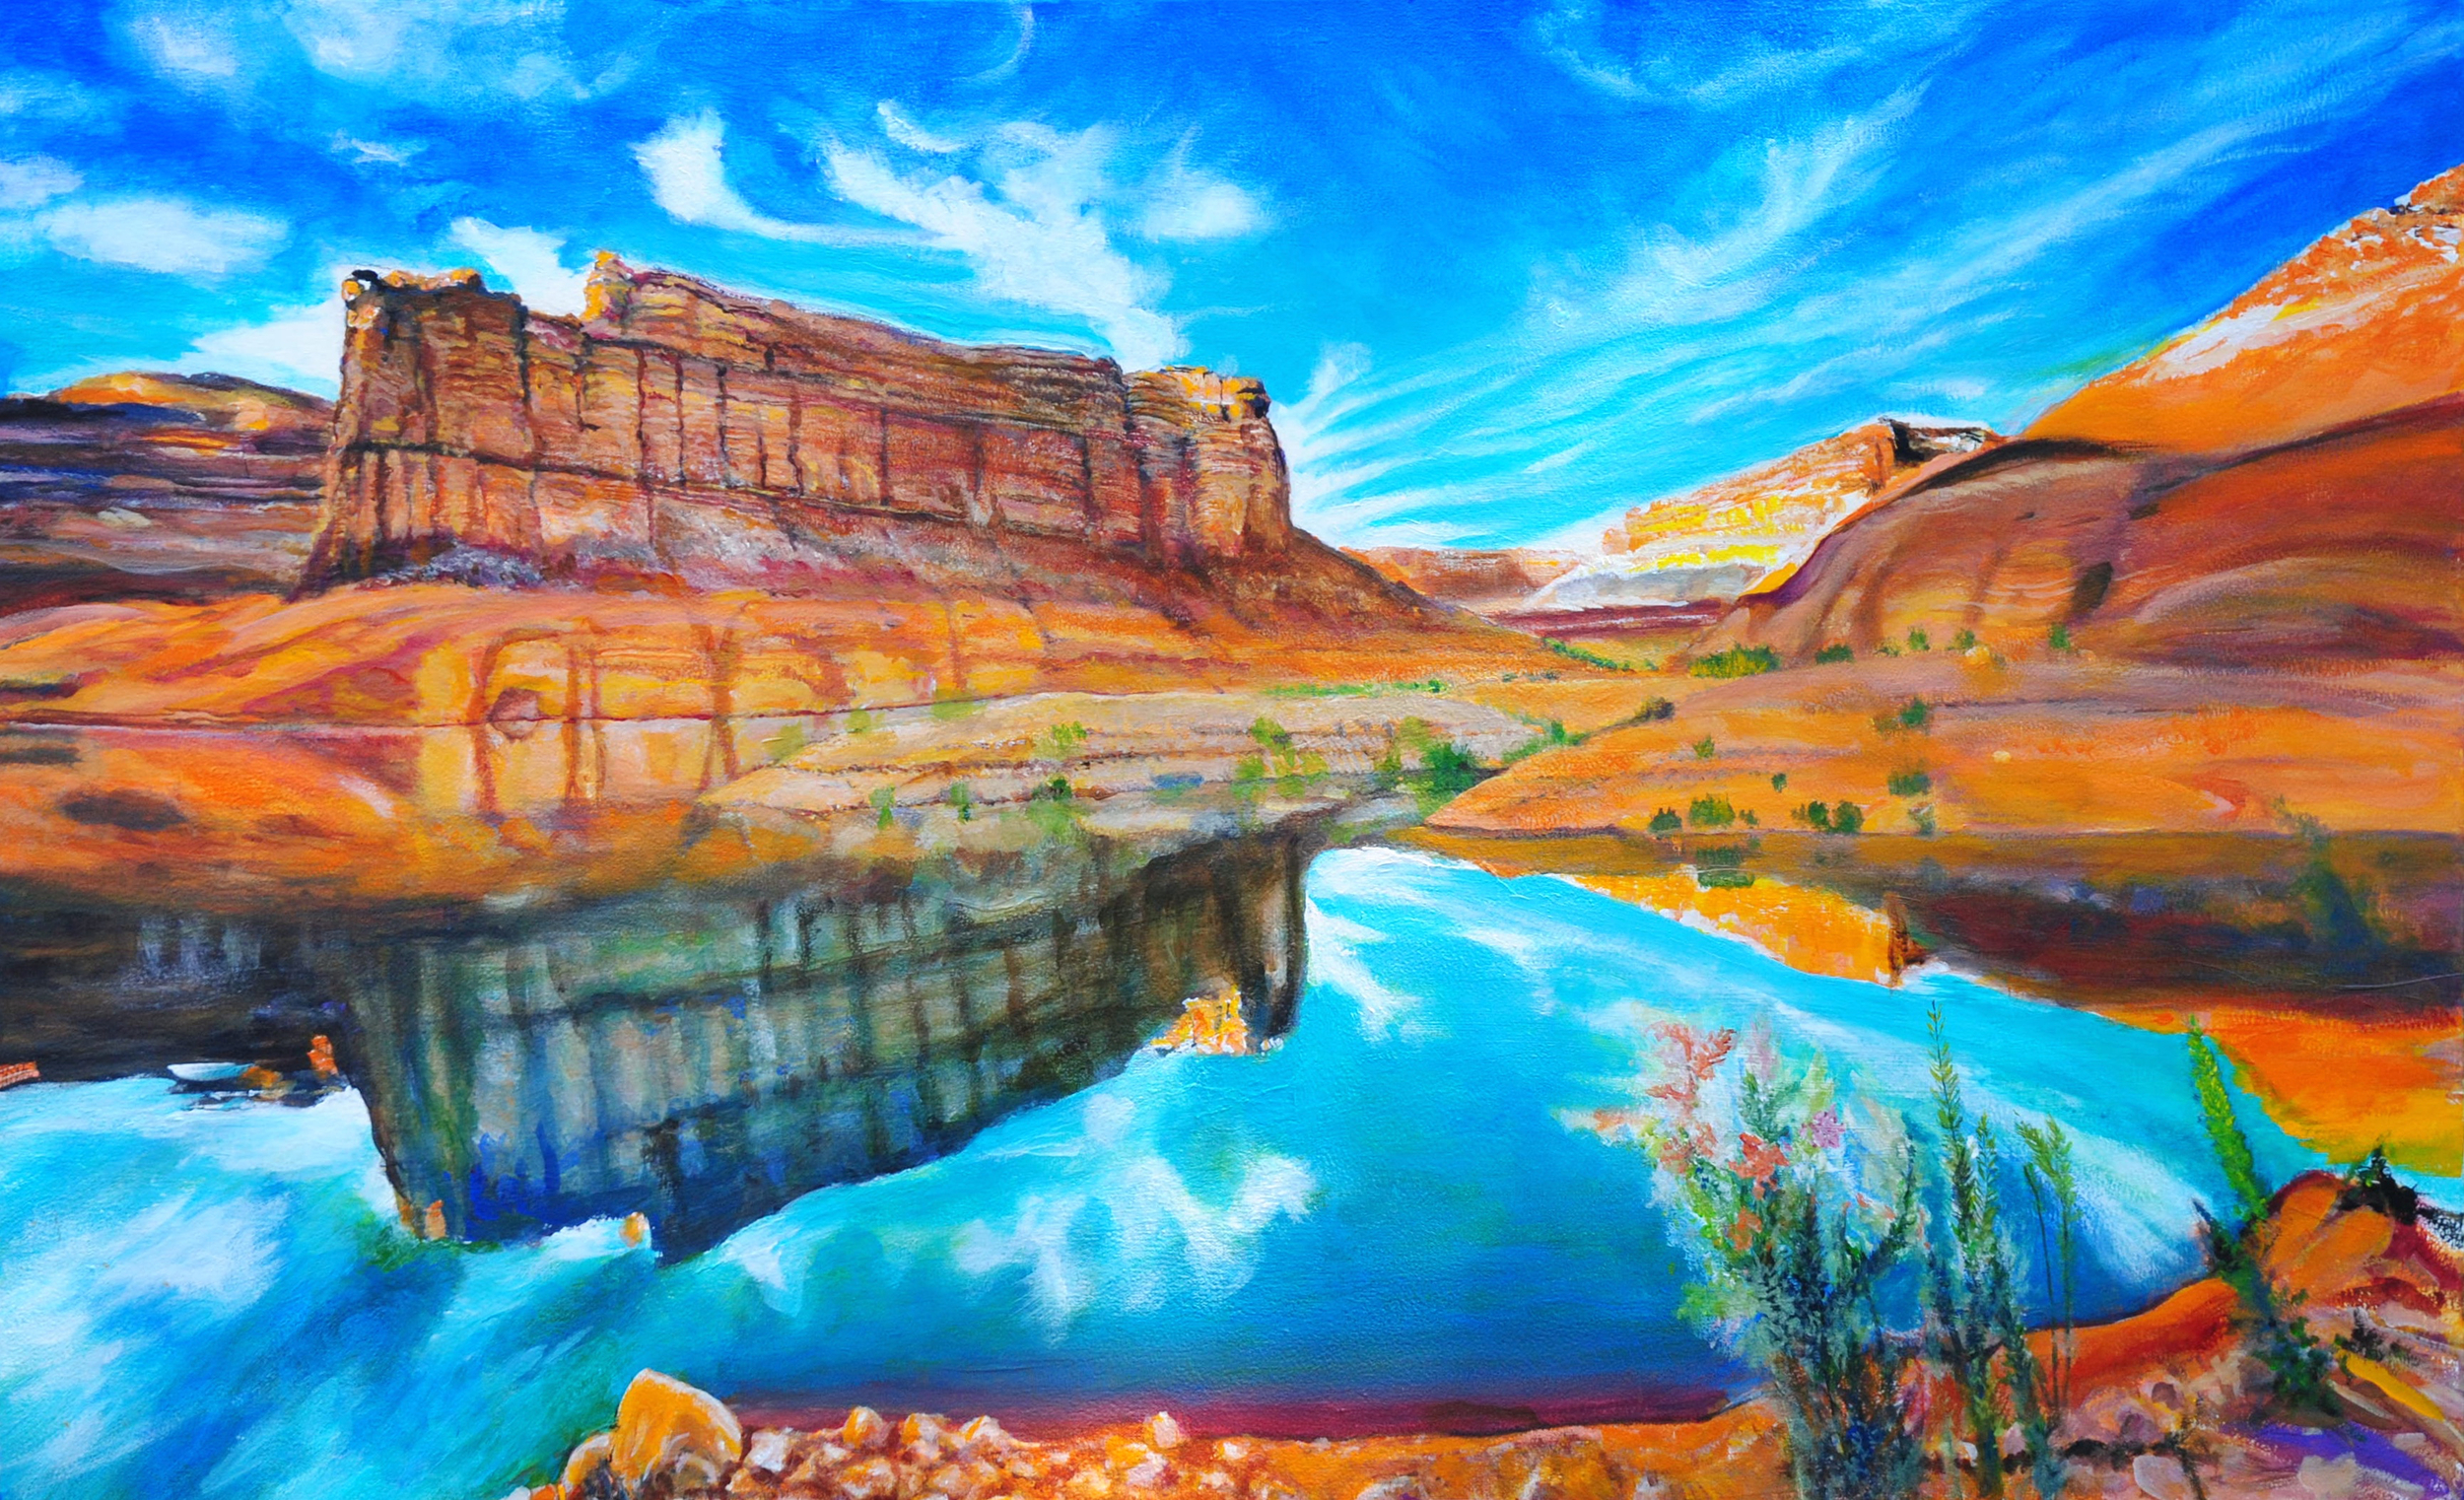 Wallpaper Full Hd 1080p 3d Grand Canyon Lake Powell Reflections By George Porter